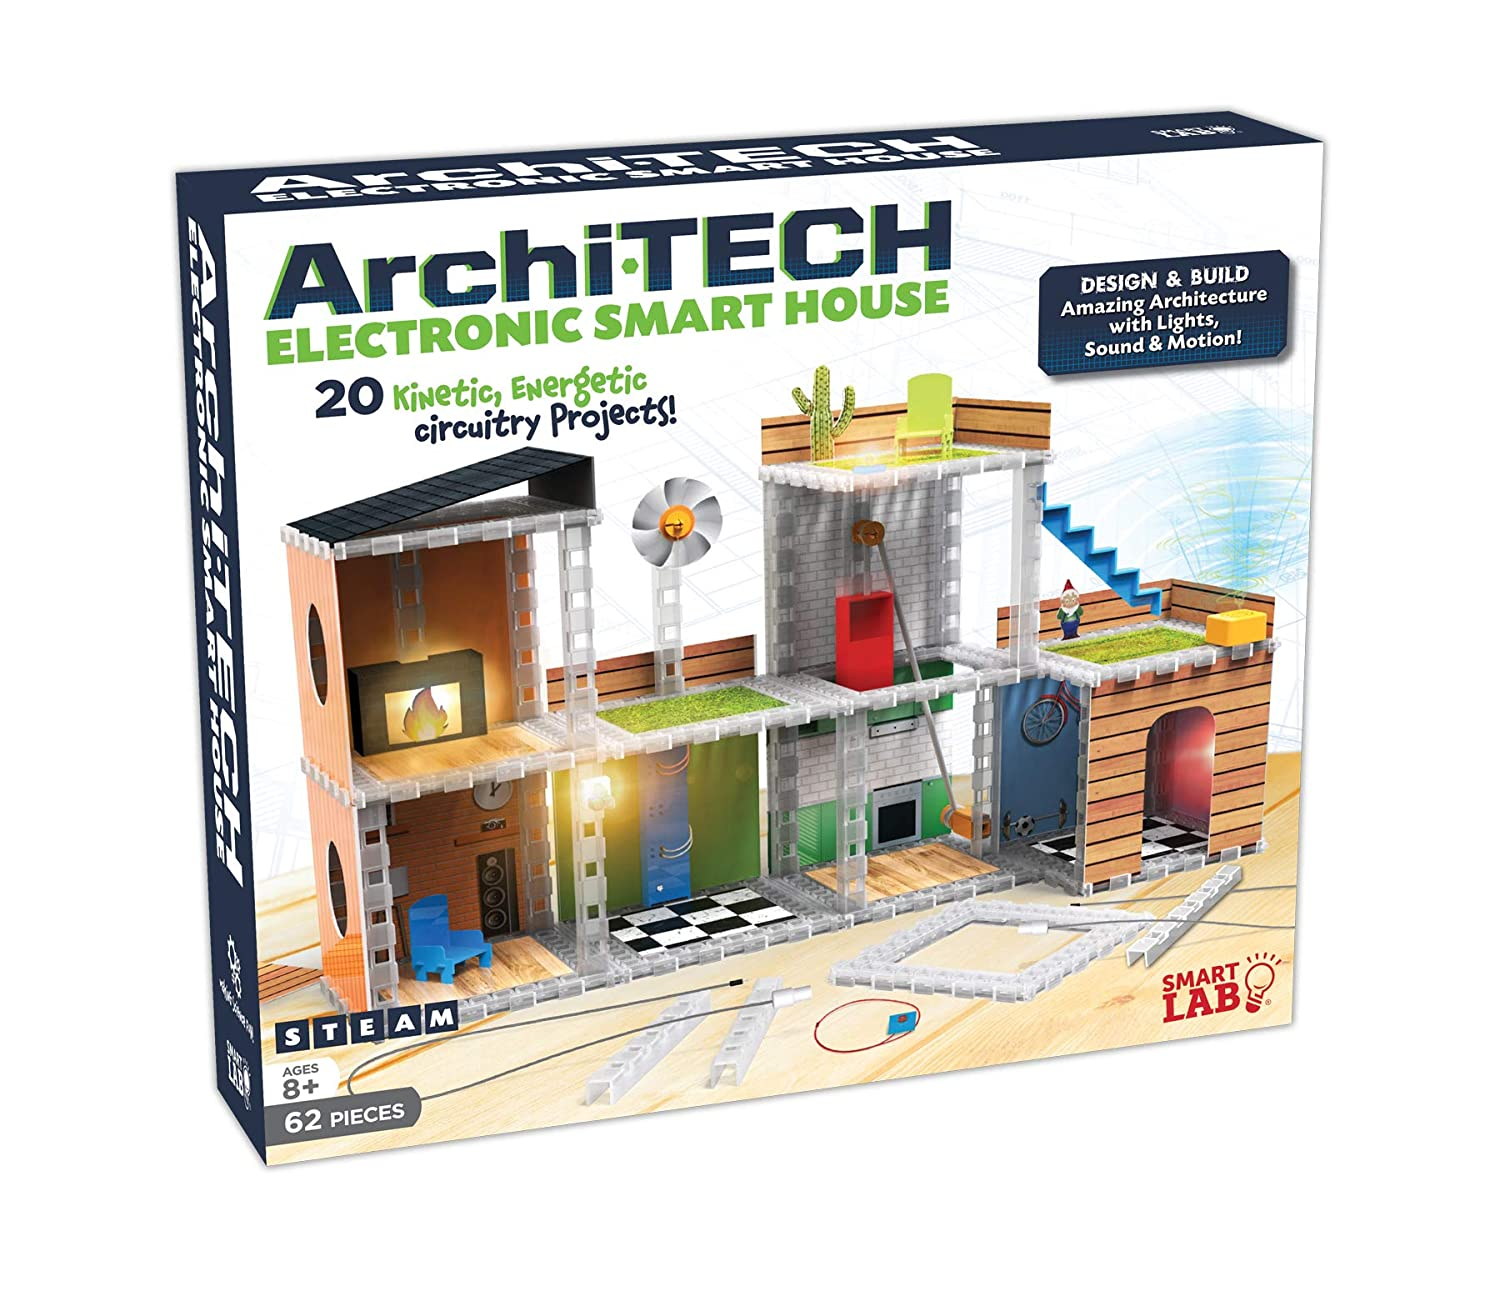 Smartlab Toys Sl306050 Archi Tech Electronic Smart House Buy Elenco Snap Circuits Green Alternative Energy Kit Online At Low 62 Piece 16 X 10 9 Multicolor Games